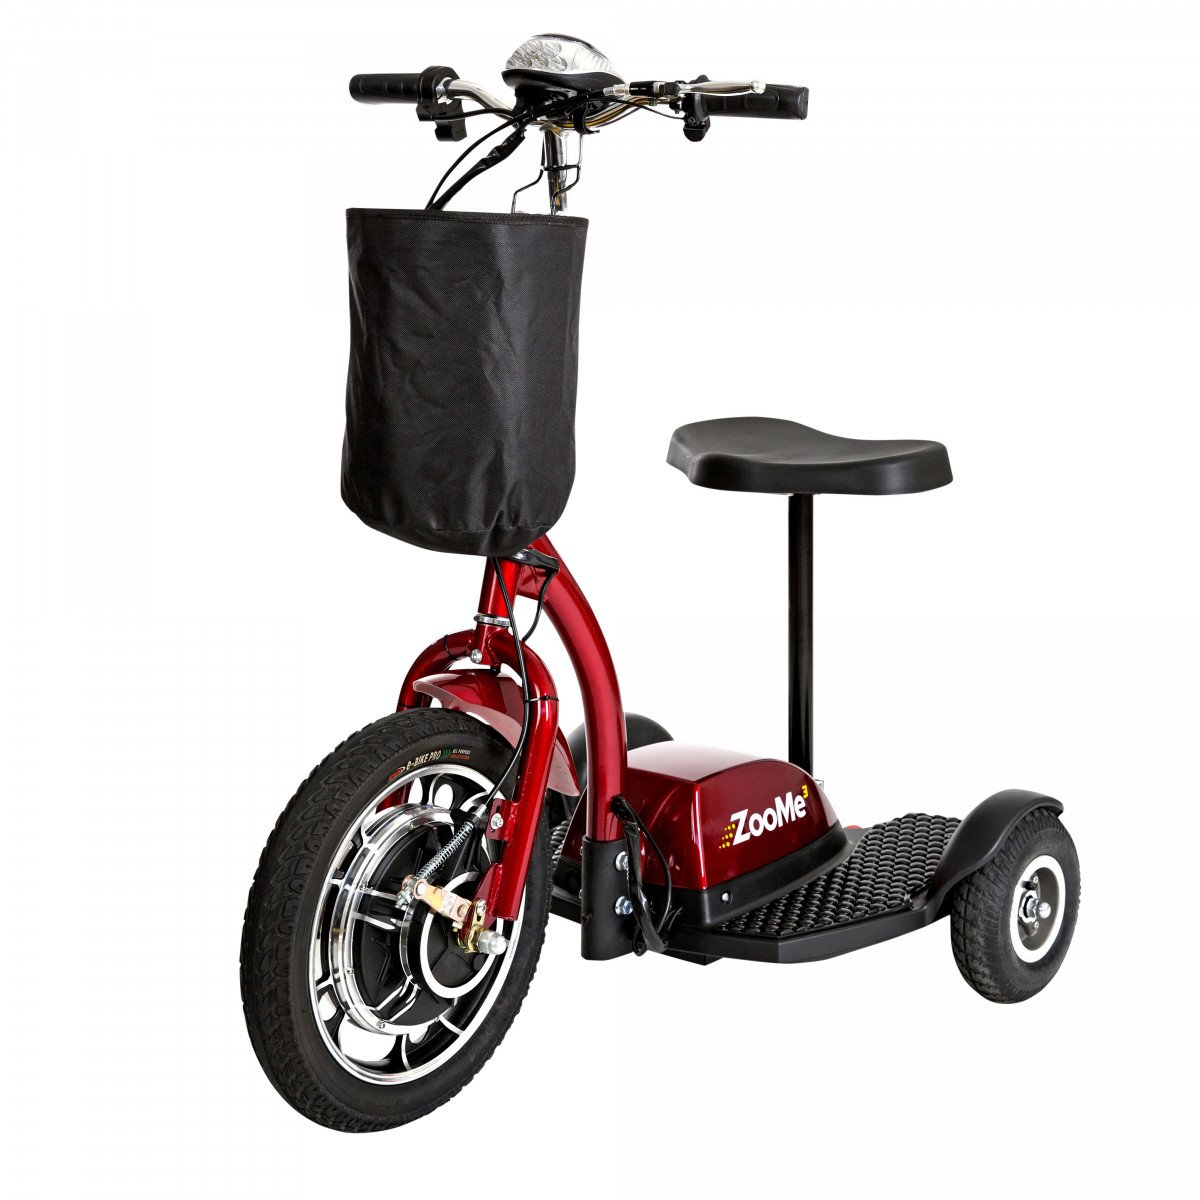 zoome 3 wheel recreational scooter 828